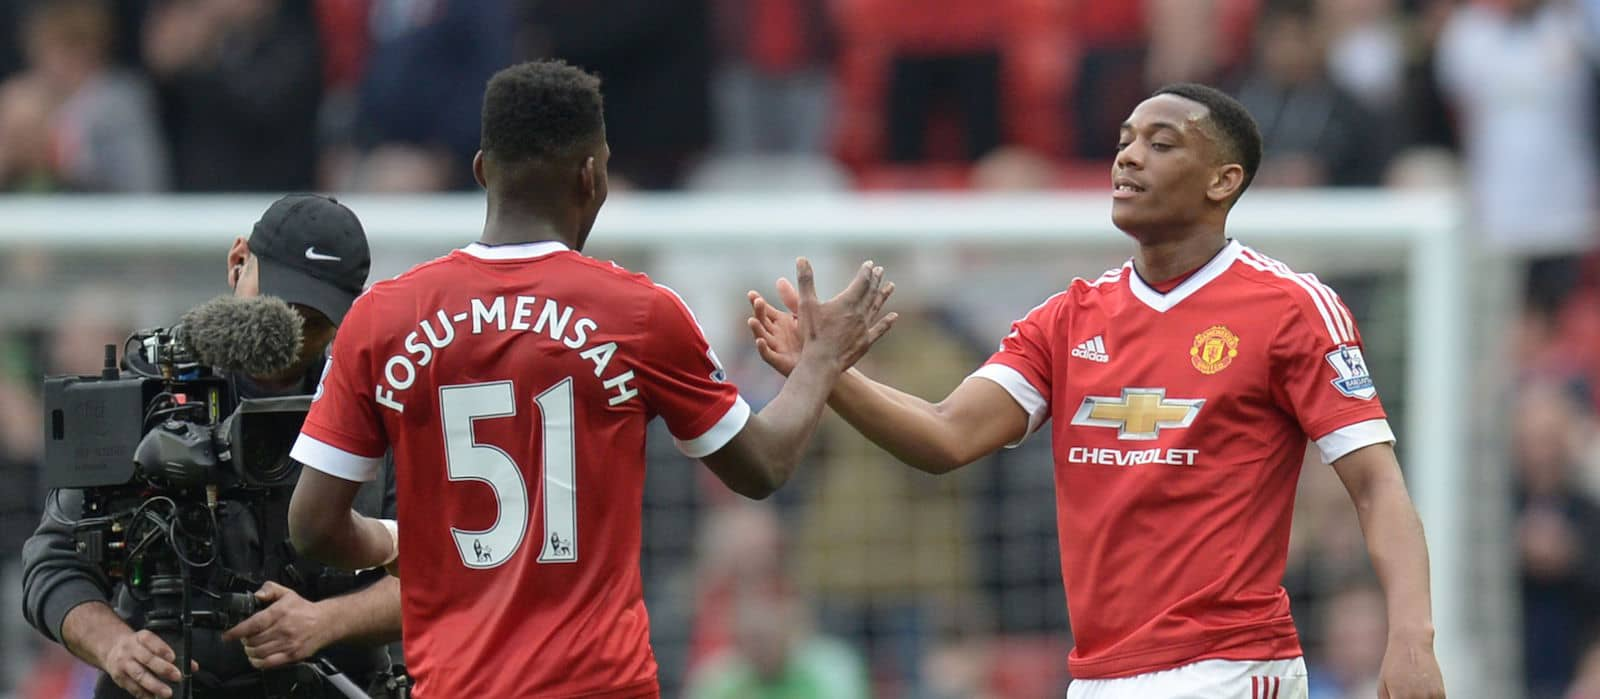 Ian Wright: Get rid of Darmian and Rojo, play the youngsters